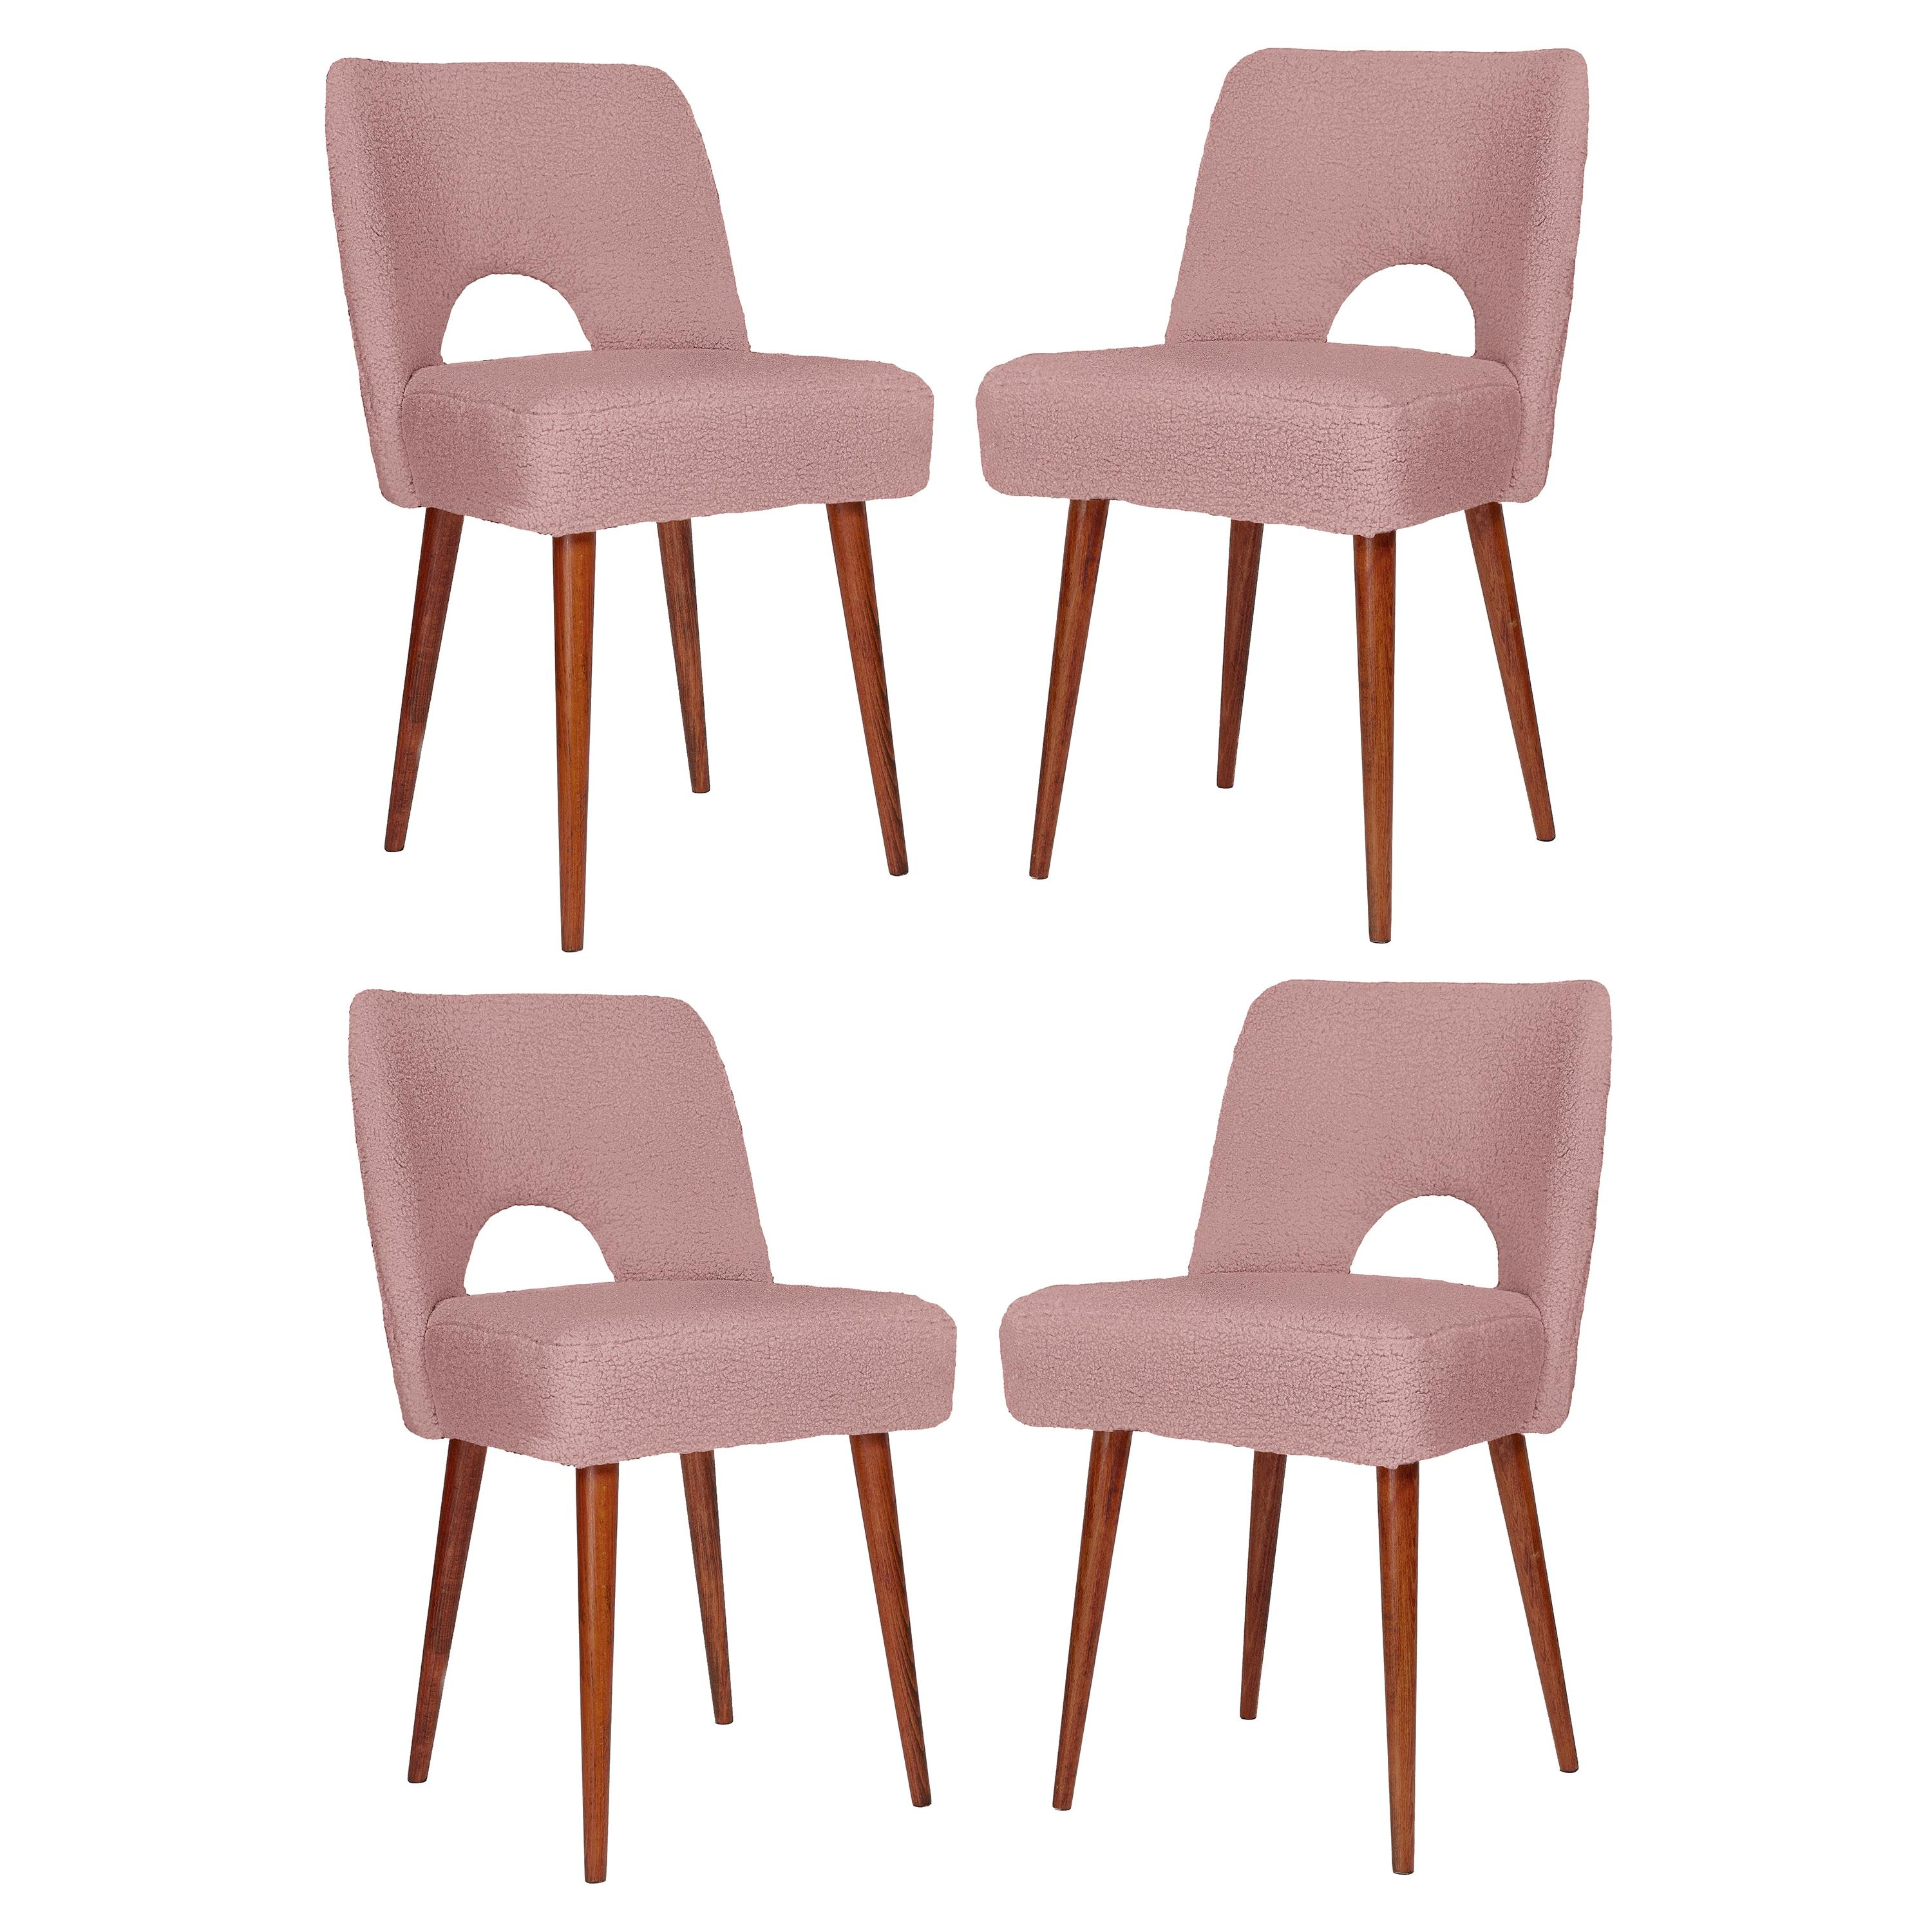 Set of Four Pink Boucle 'Shell' Chairs, 1960s